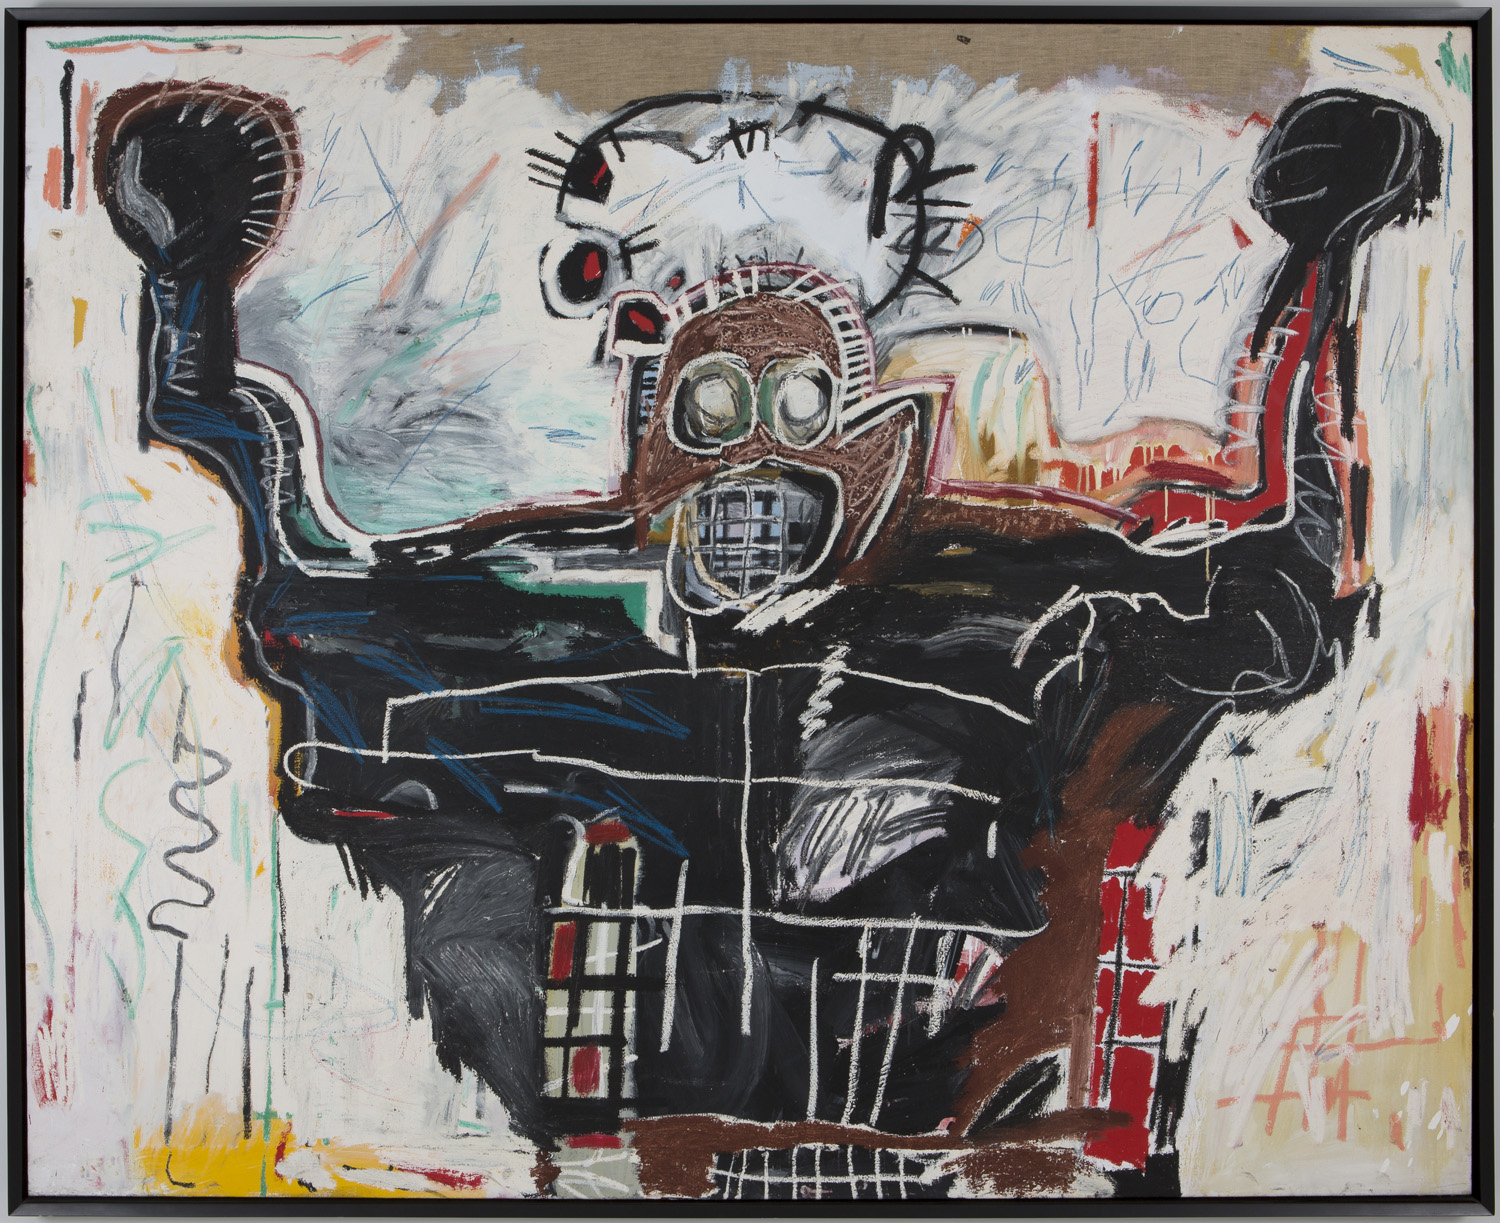 Jean-Michel Basquiat, Untitled (Boxer), 1982, Acrylic and oilstick on canvas, private collection © Estate of Jean-Michel Basquiat. Licensed by Artestar, New York